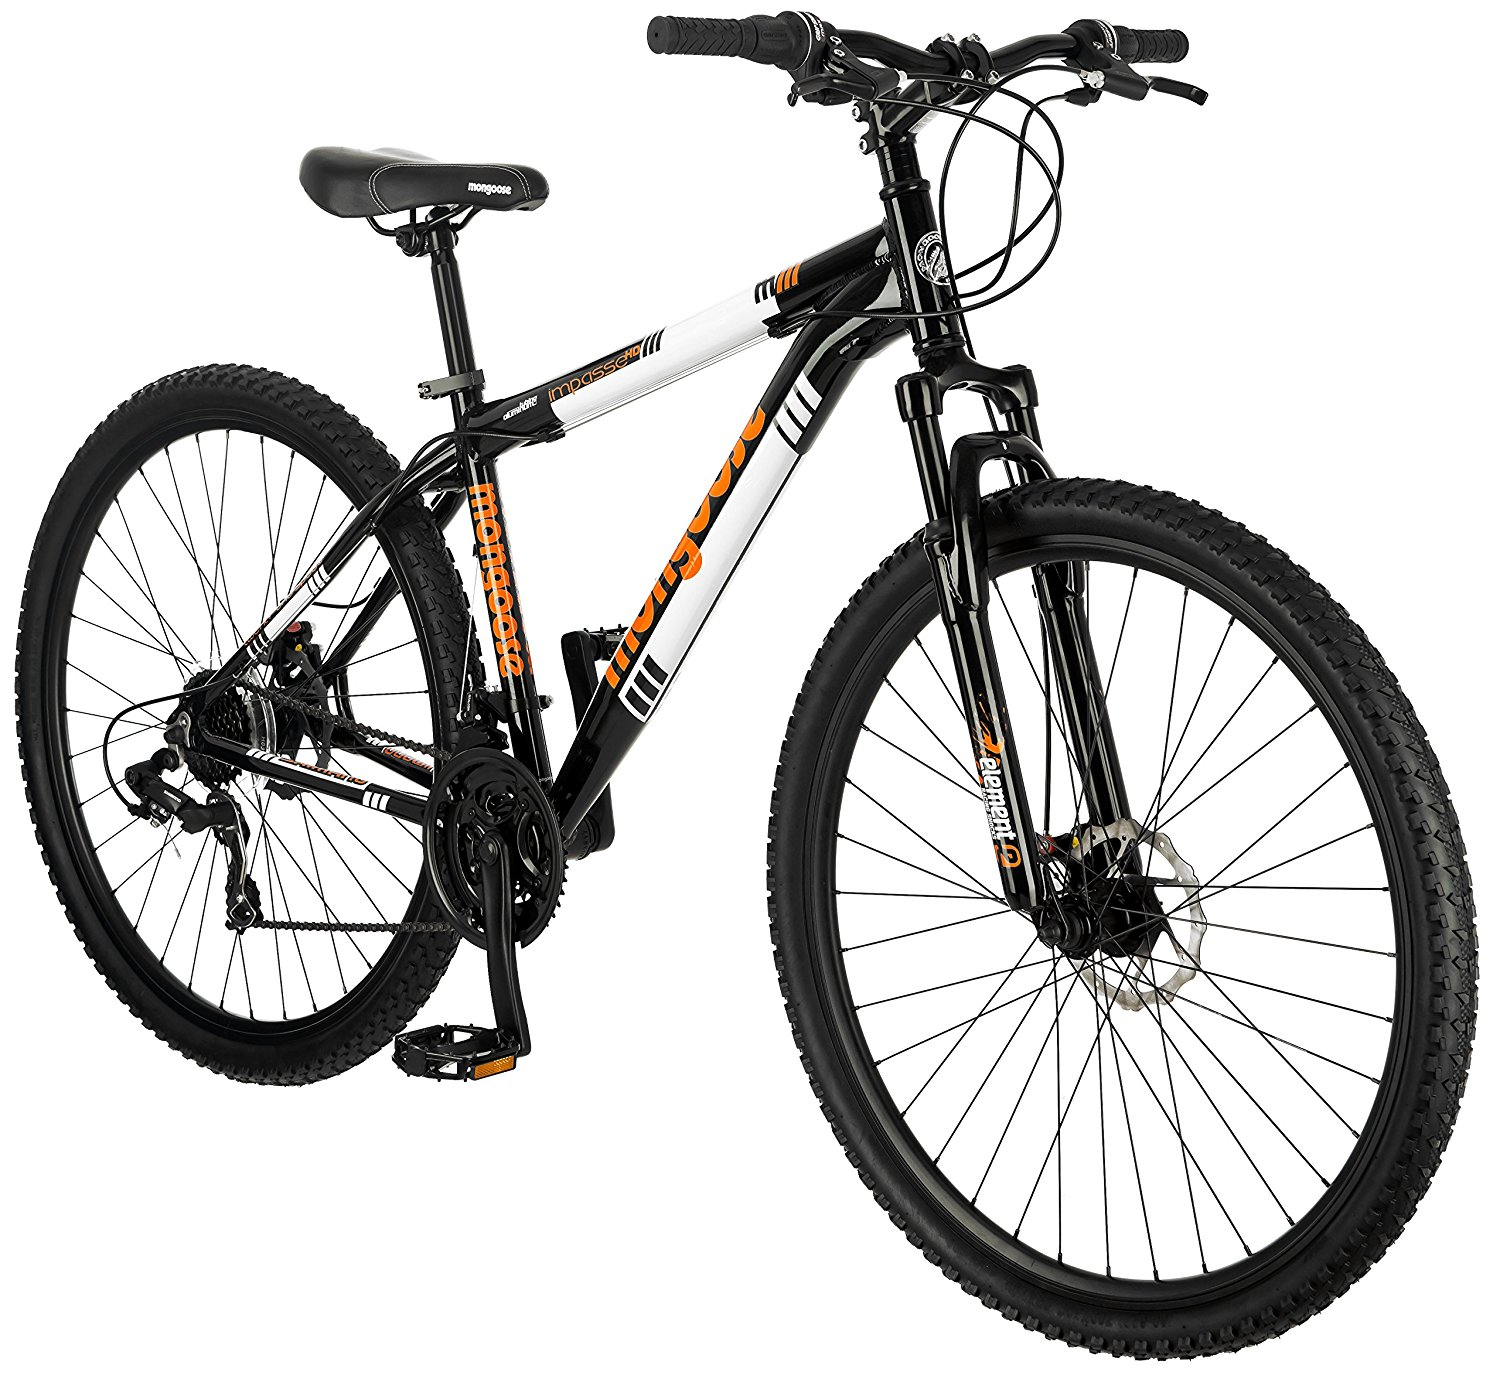 Mongoose Mountain Bike Gmc Bike